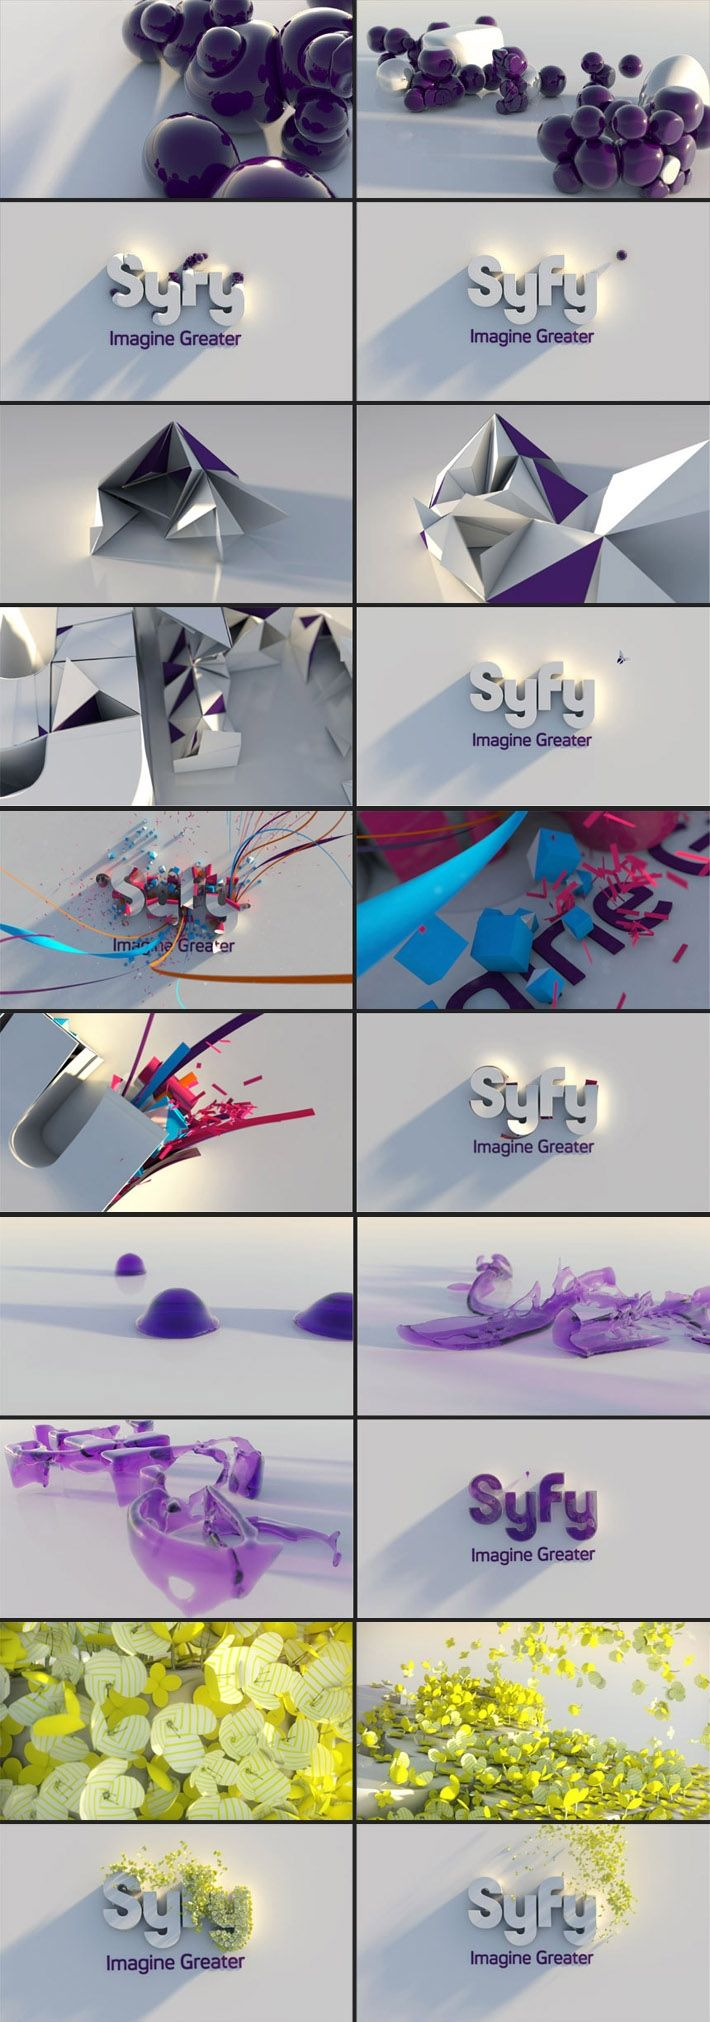 Animations created to enliven the current SyFy logotype.